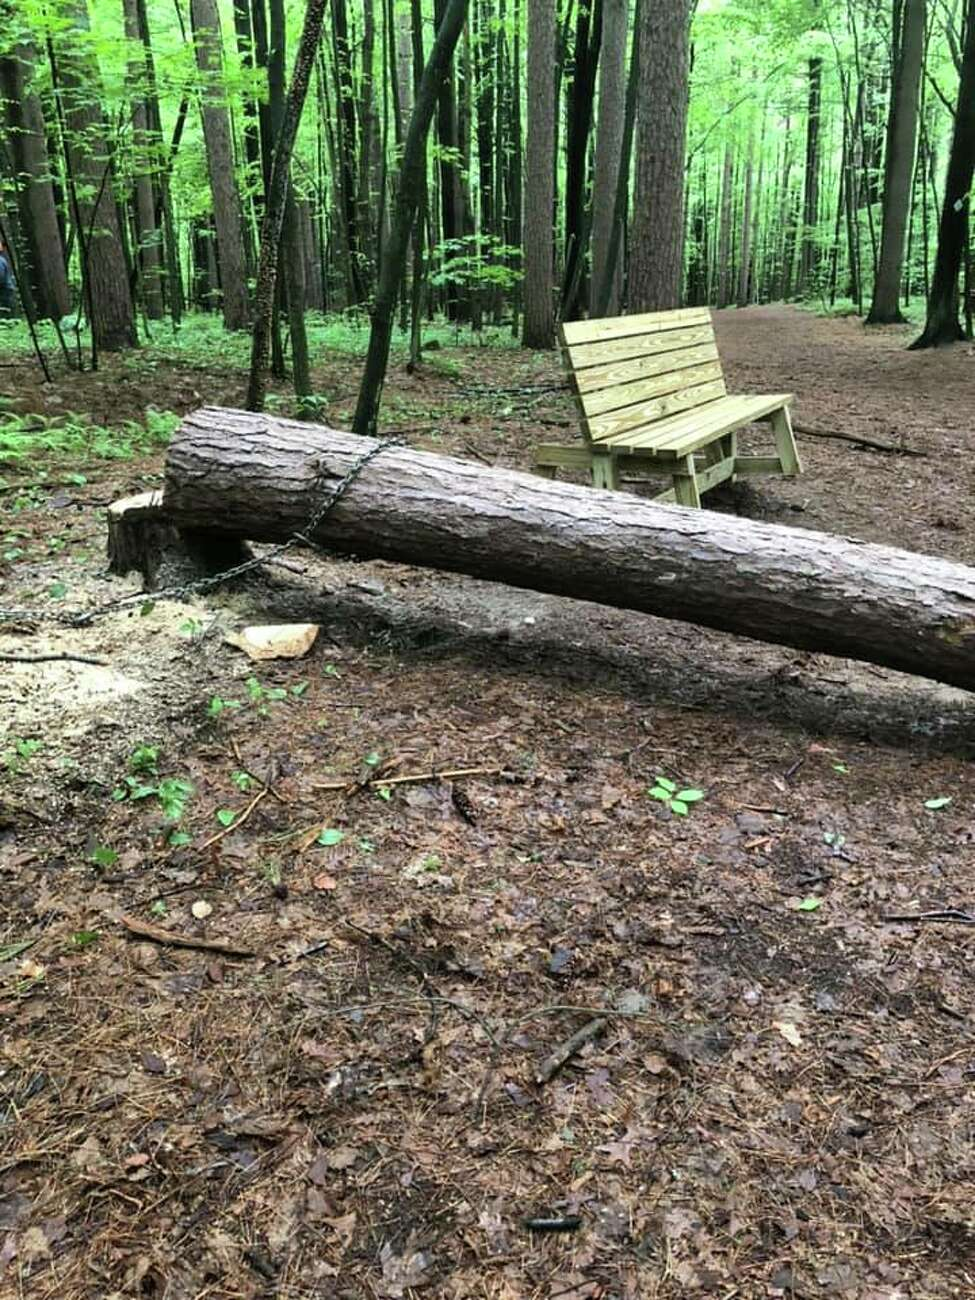 BOCES Environmental Conservation and Forestry workers remove dead or dangerous trees from Kinns Road Park. A falling tree was removed near the recently-installed bench, part of an Eagle Scout project.